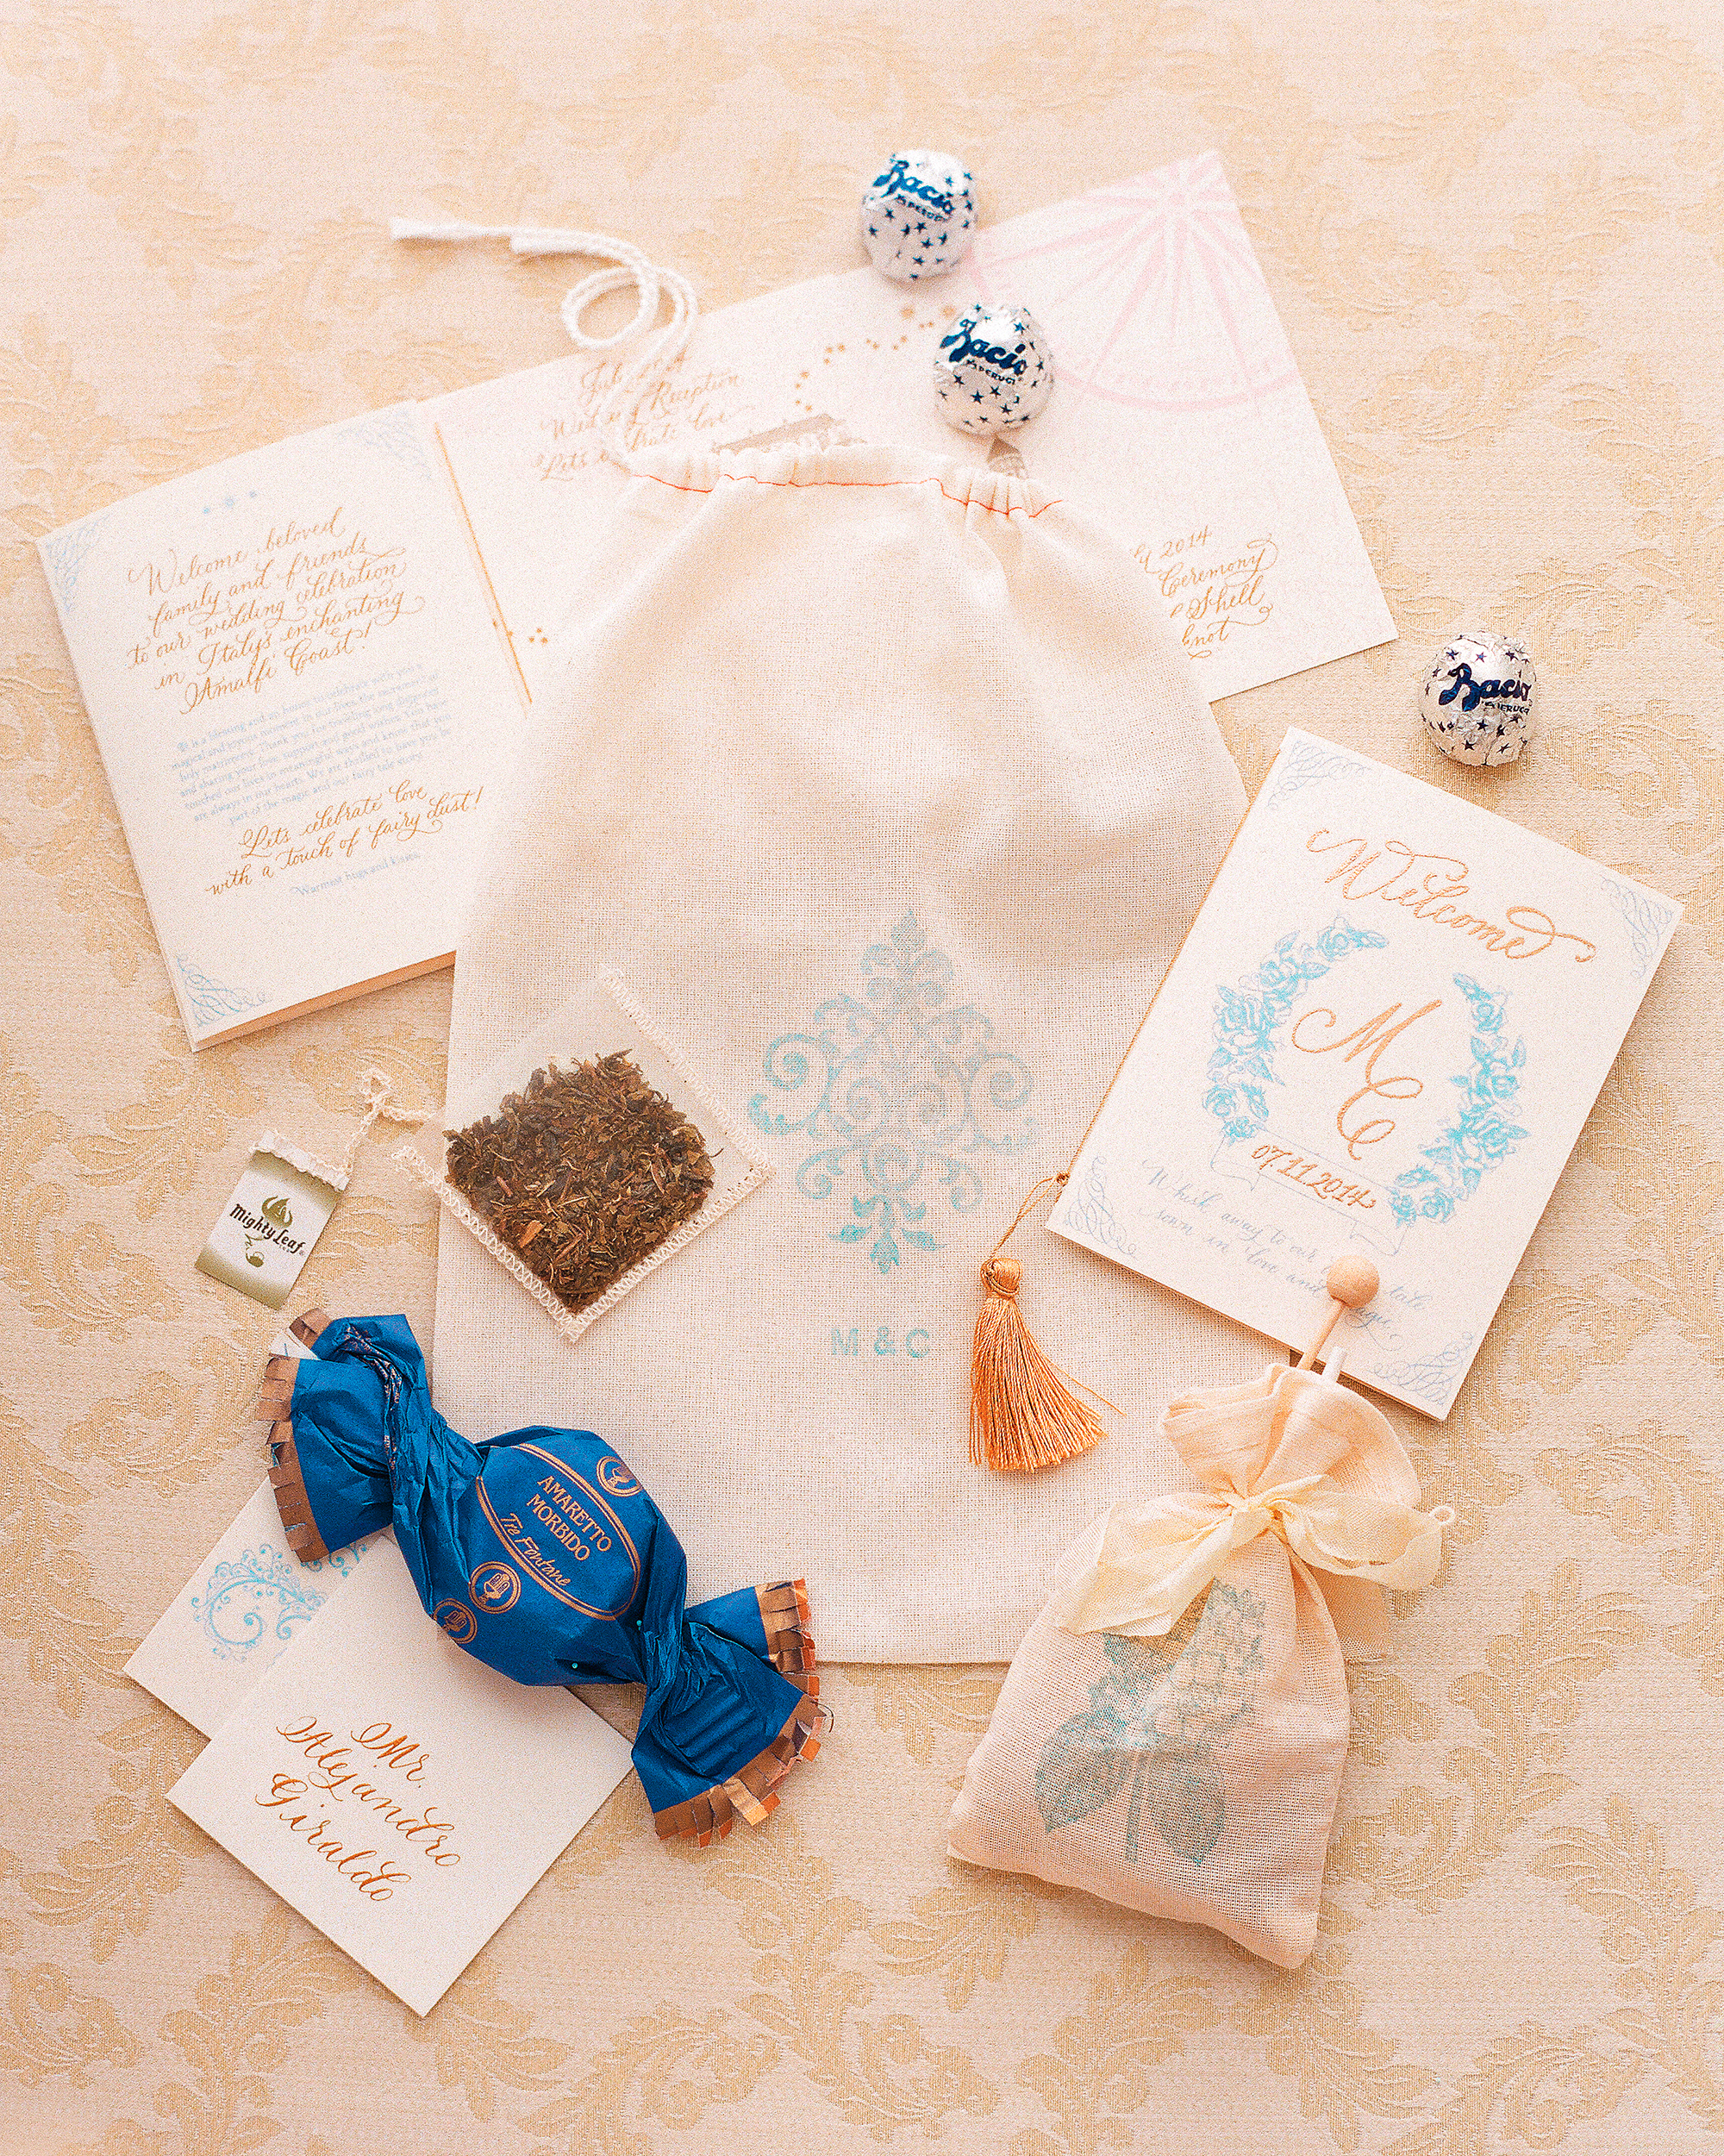 michelle-christopher-positano-italy-stationary-favors-0054-s111681.jpg